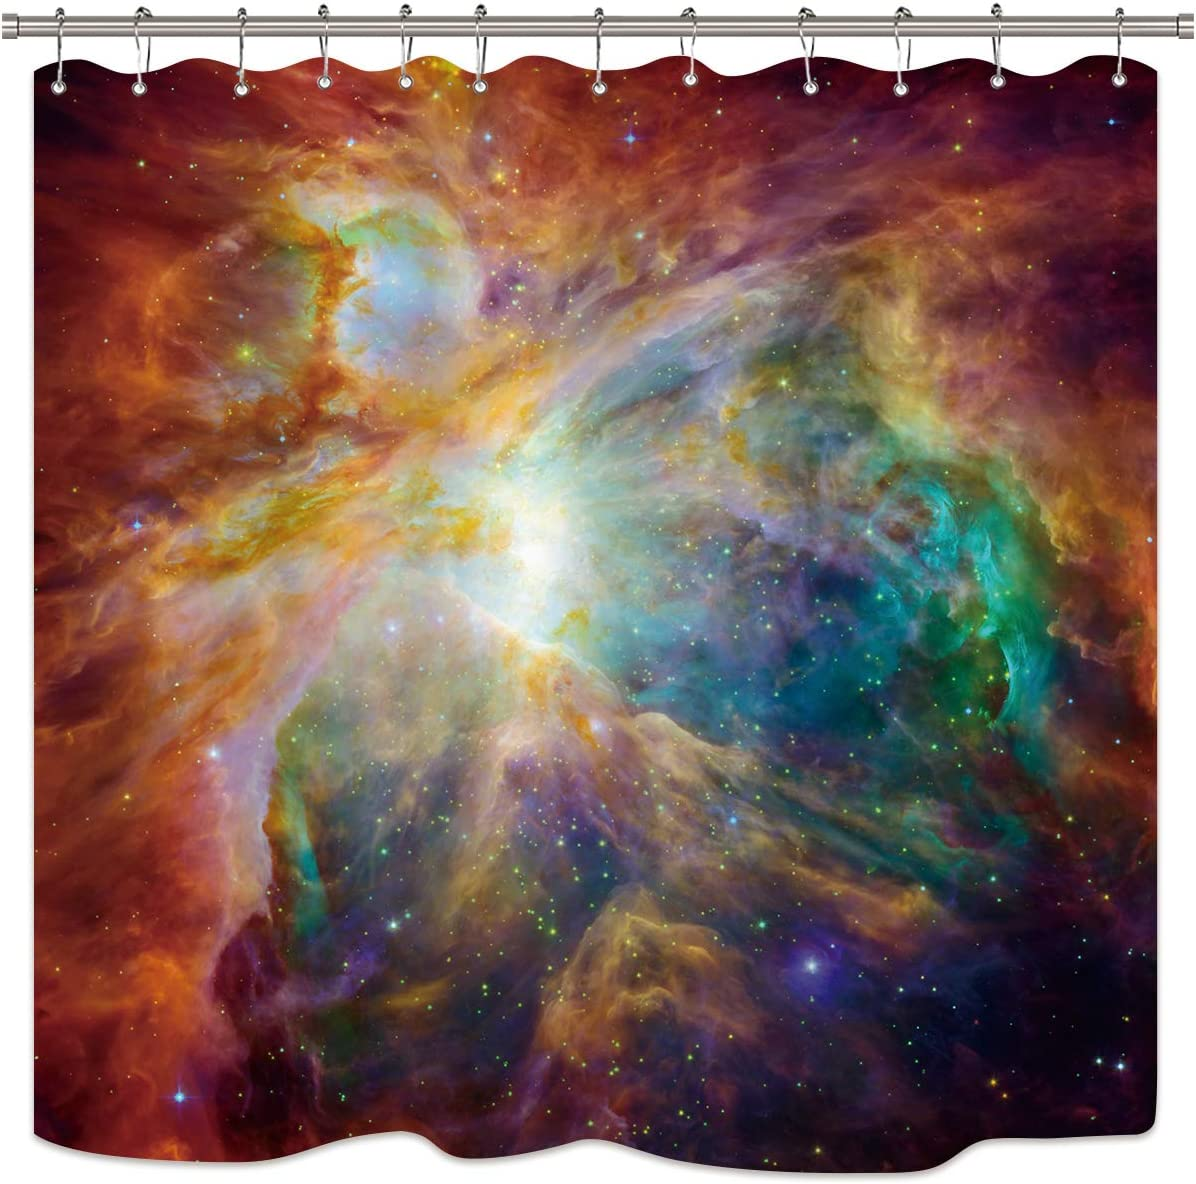 Riyidecor Outer Space Shower Curtain Galaxy Universe Yellow Orange Colorful Psychedelic Planet Nebula Starry Sky Decor Bathroom Set Fabric Polyester Waterproof 72X72 Inch 12 Pack Plastic Hooks